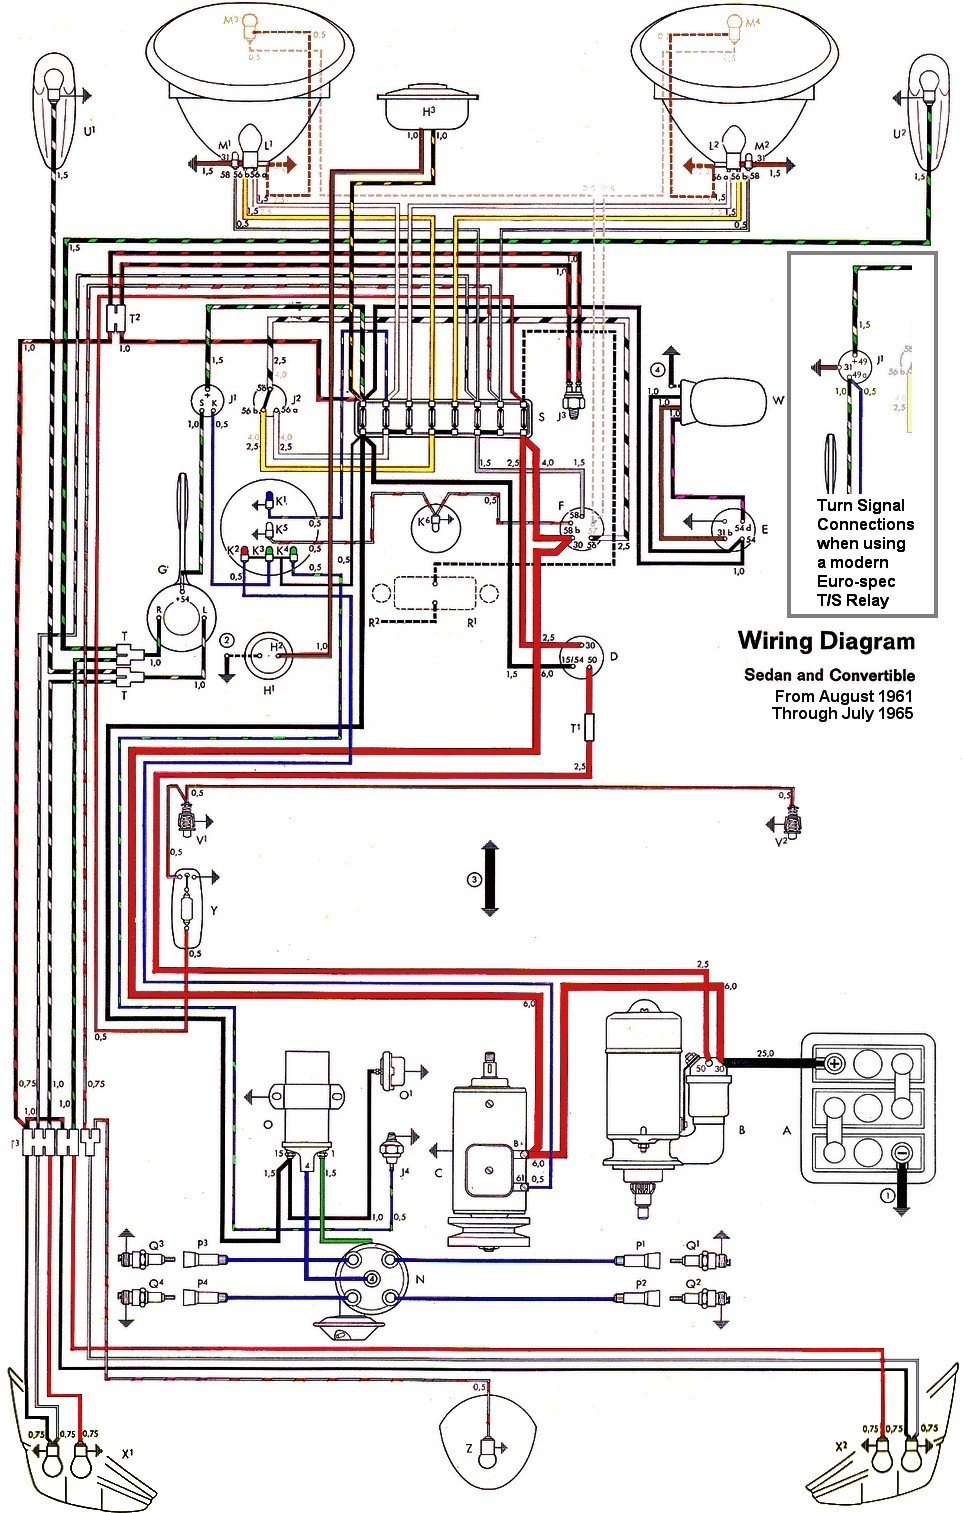 bug_62 65withinset thesamba com type 1 wiring diagrams 1970 vw bug wiring diagram at fashall.co